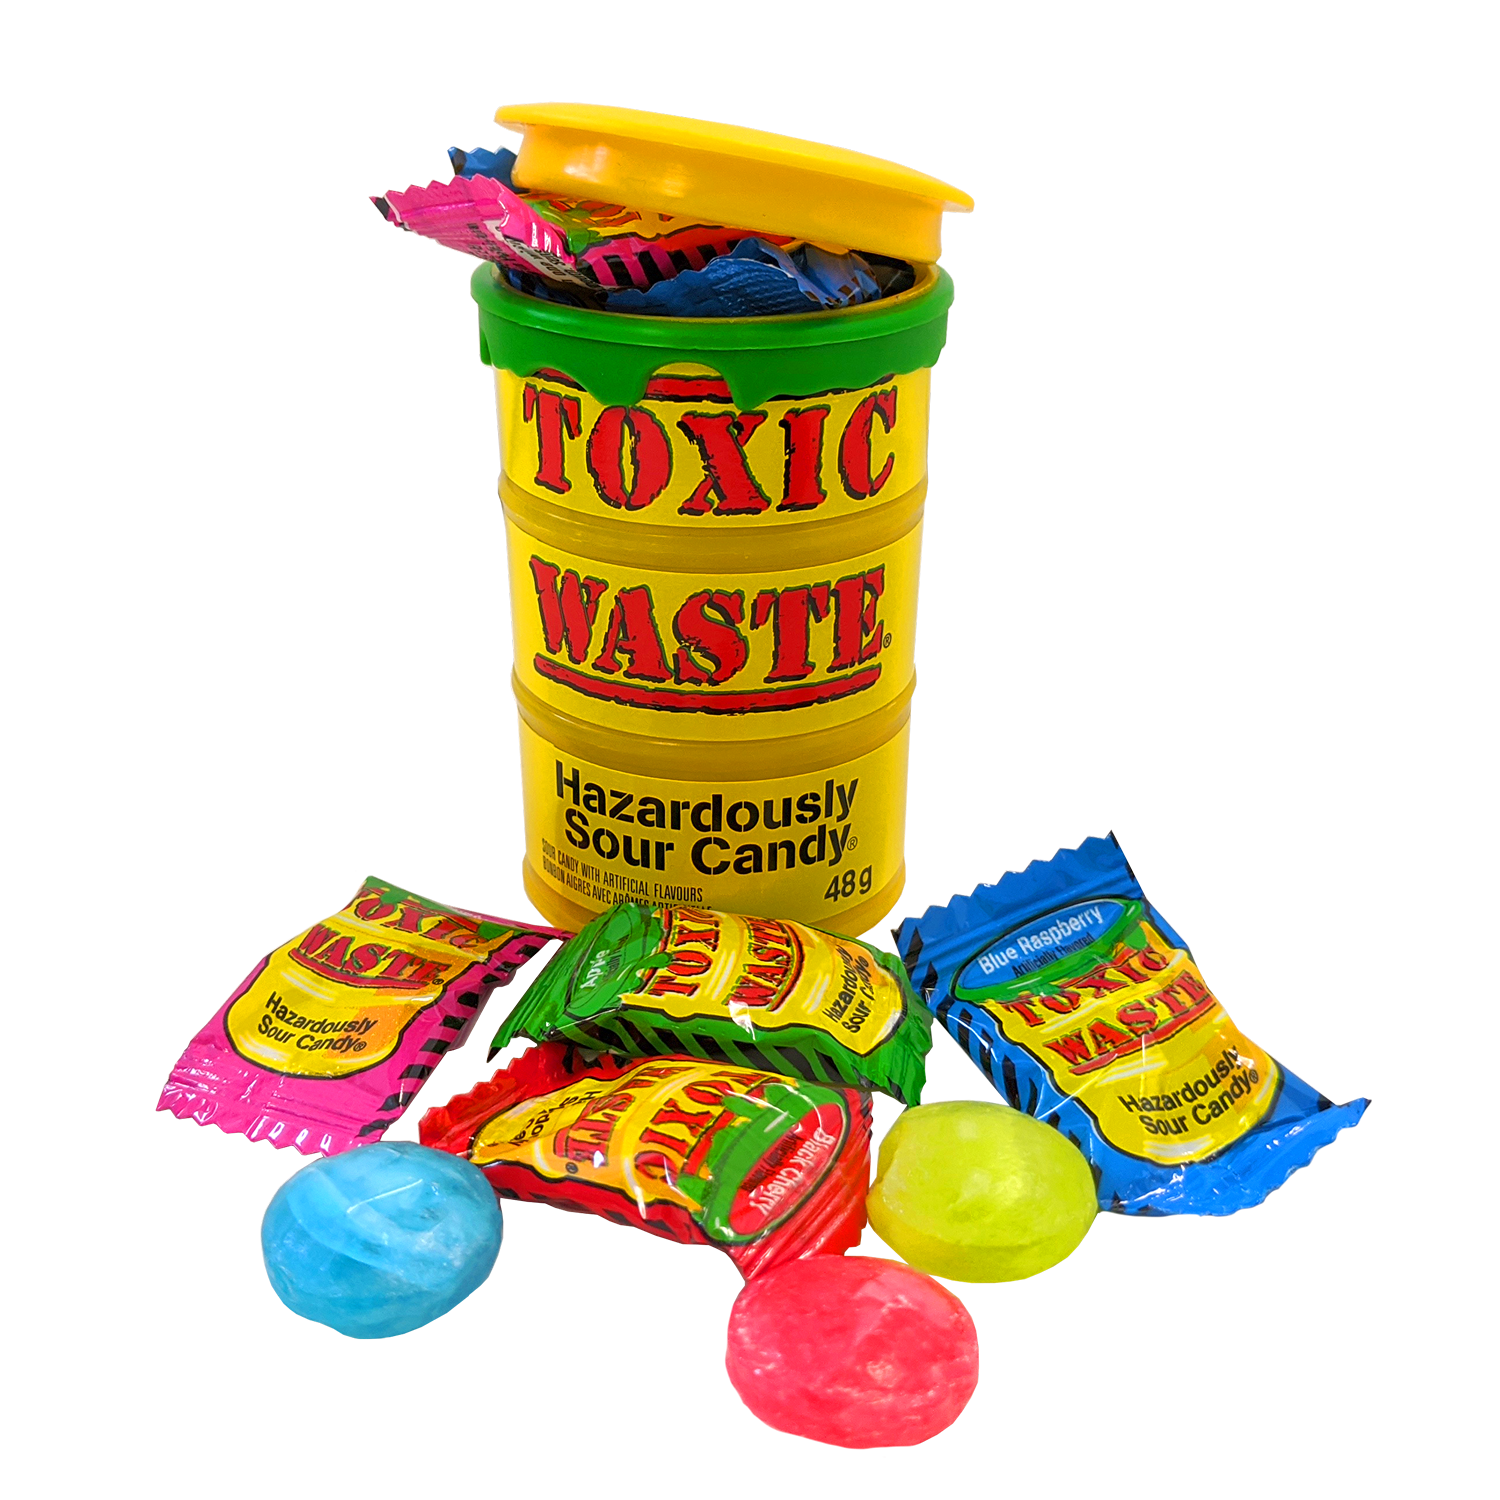 https://exclusivebrands.ca/wp-content/uploads/2021/02/prod-novelty-ToxicWaste-e1613512134868.png